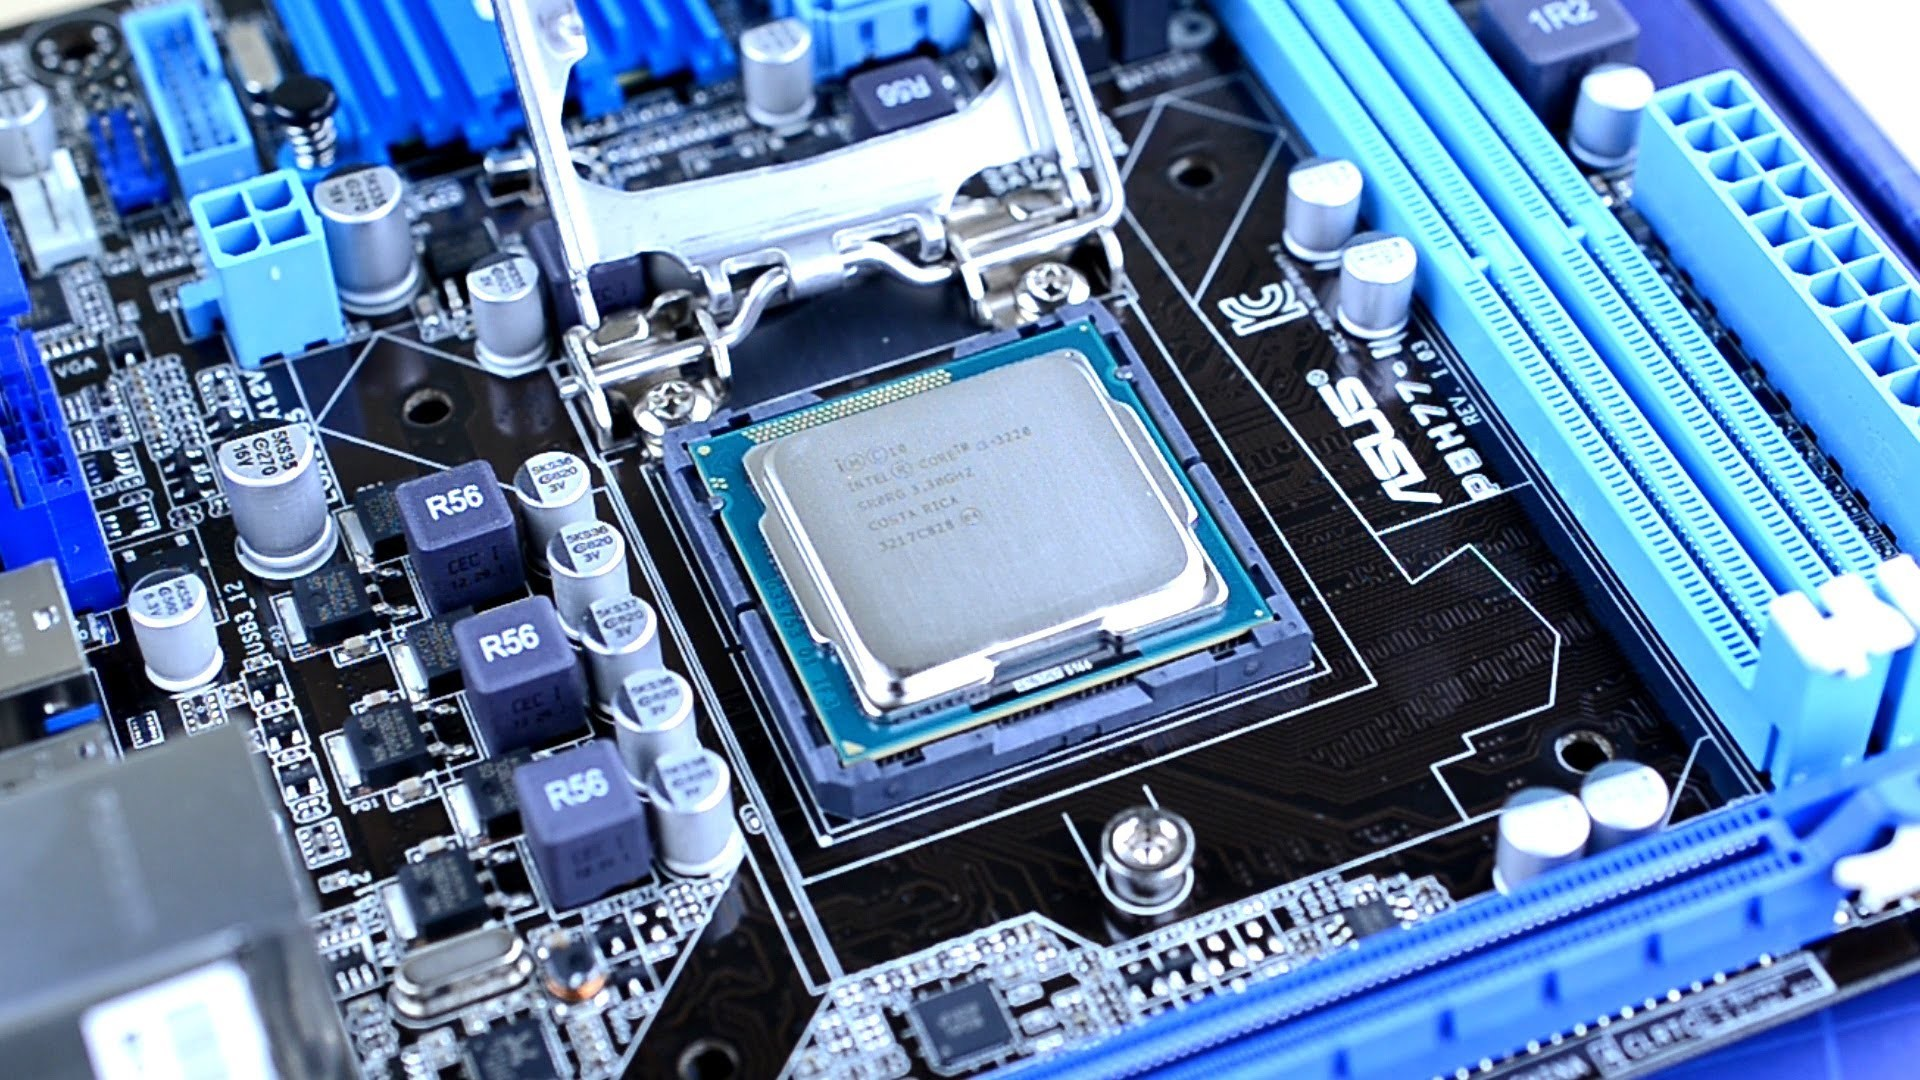 66 Motherboard Hd Wallpapers on WallpaperPlay 1920x1080